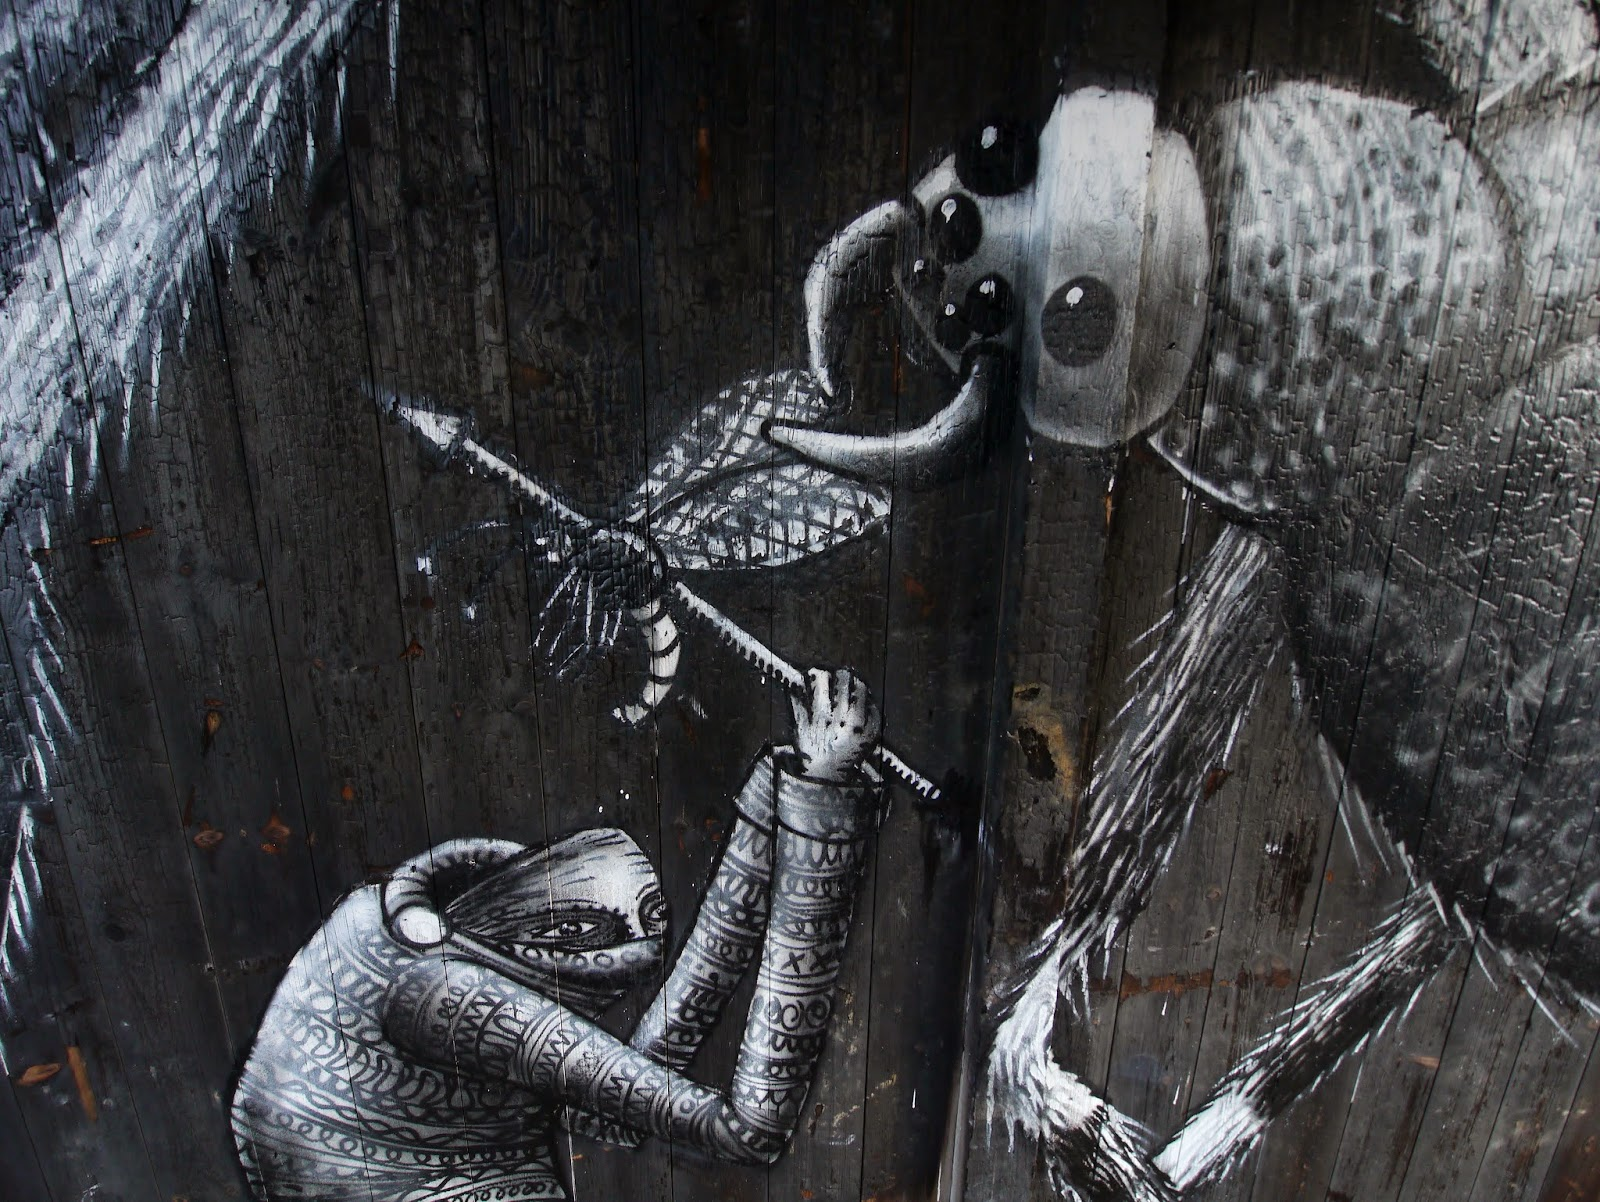 phlegm-the-spider-in-mosborough-sheffield-03